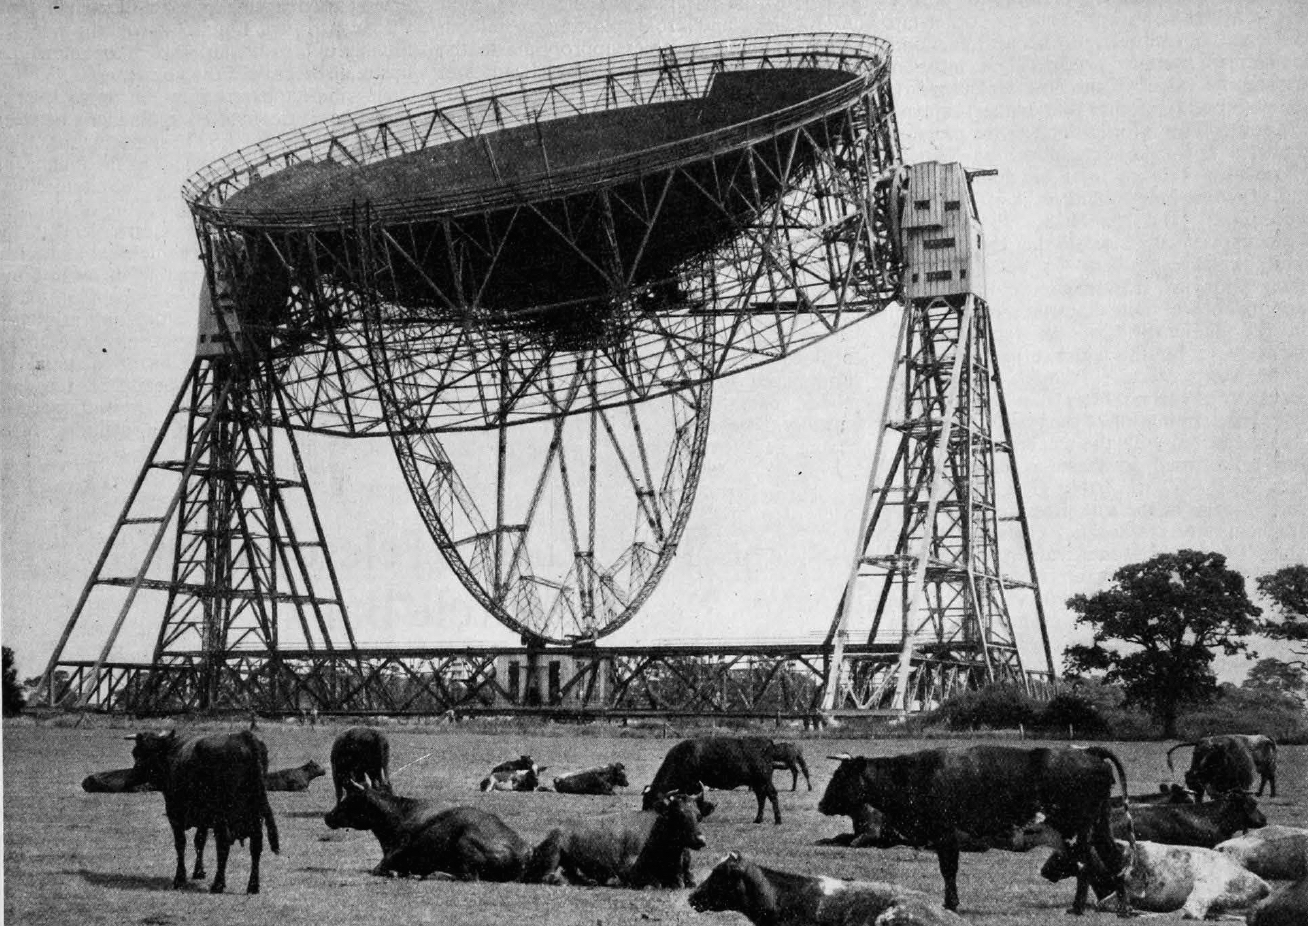 The Lovell Telescope in 1957